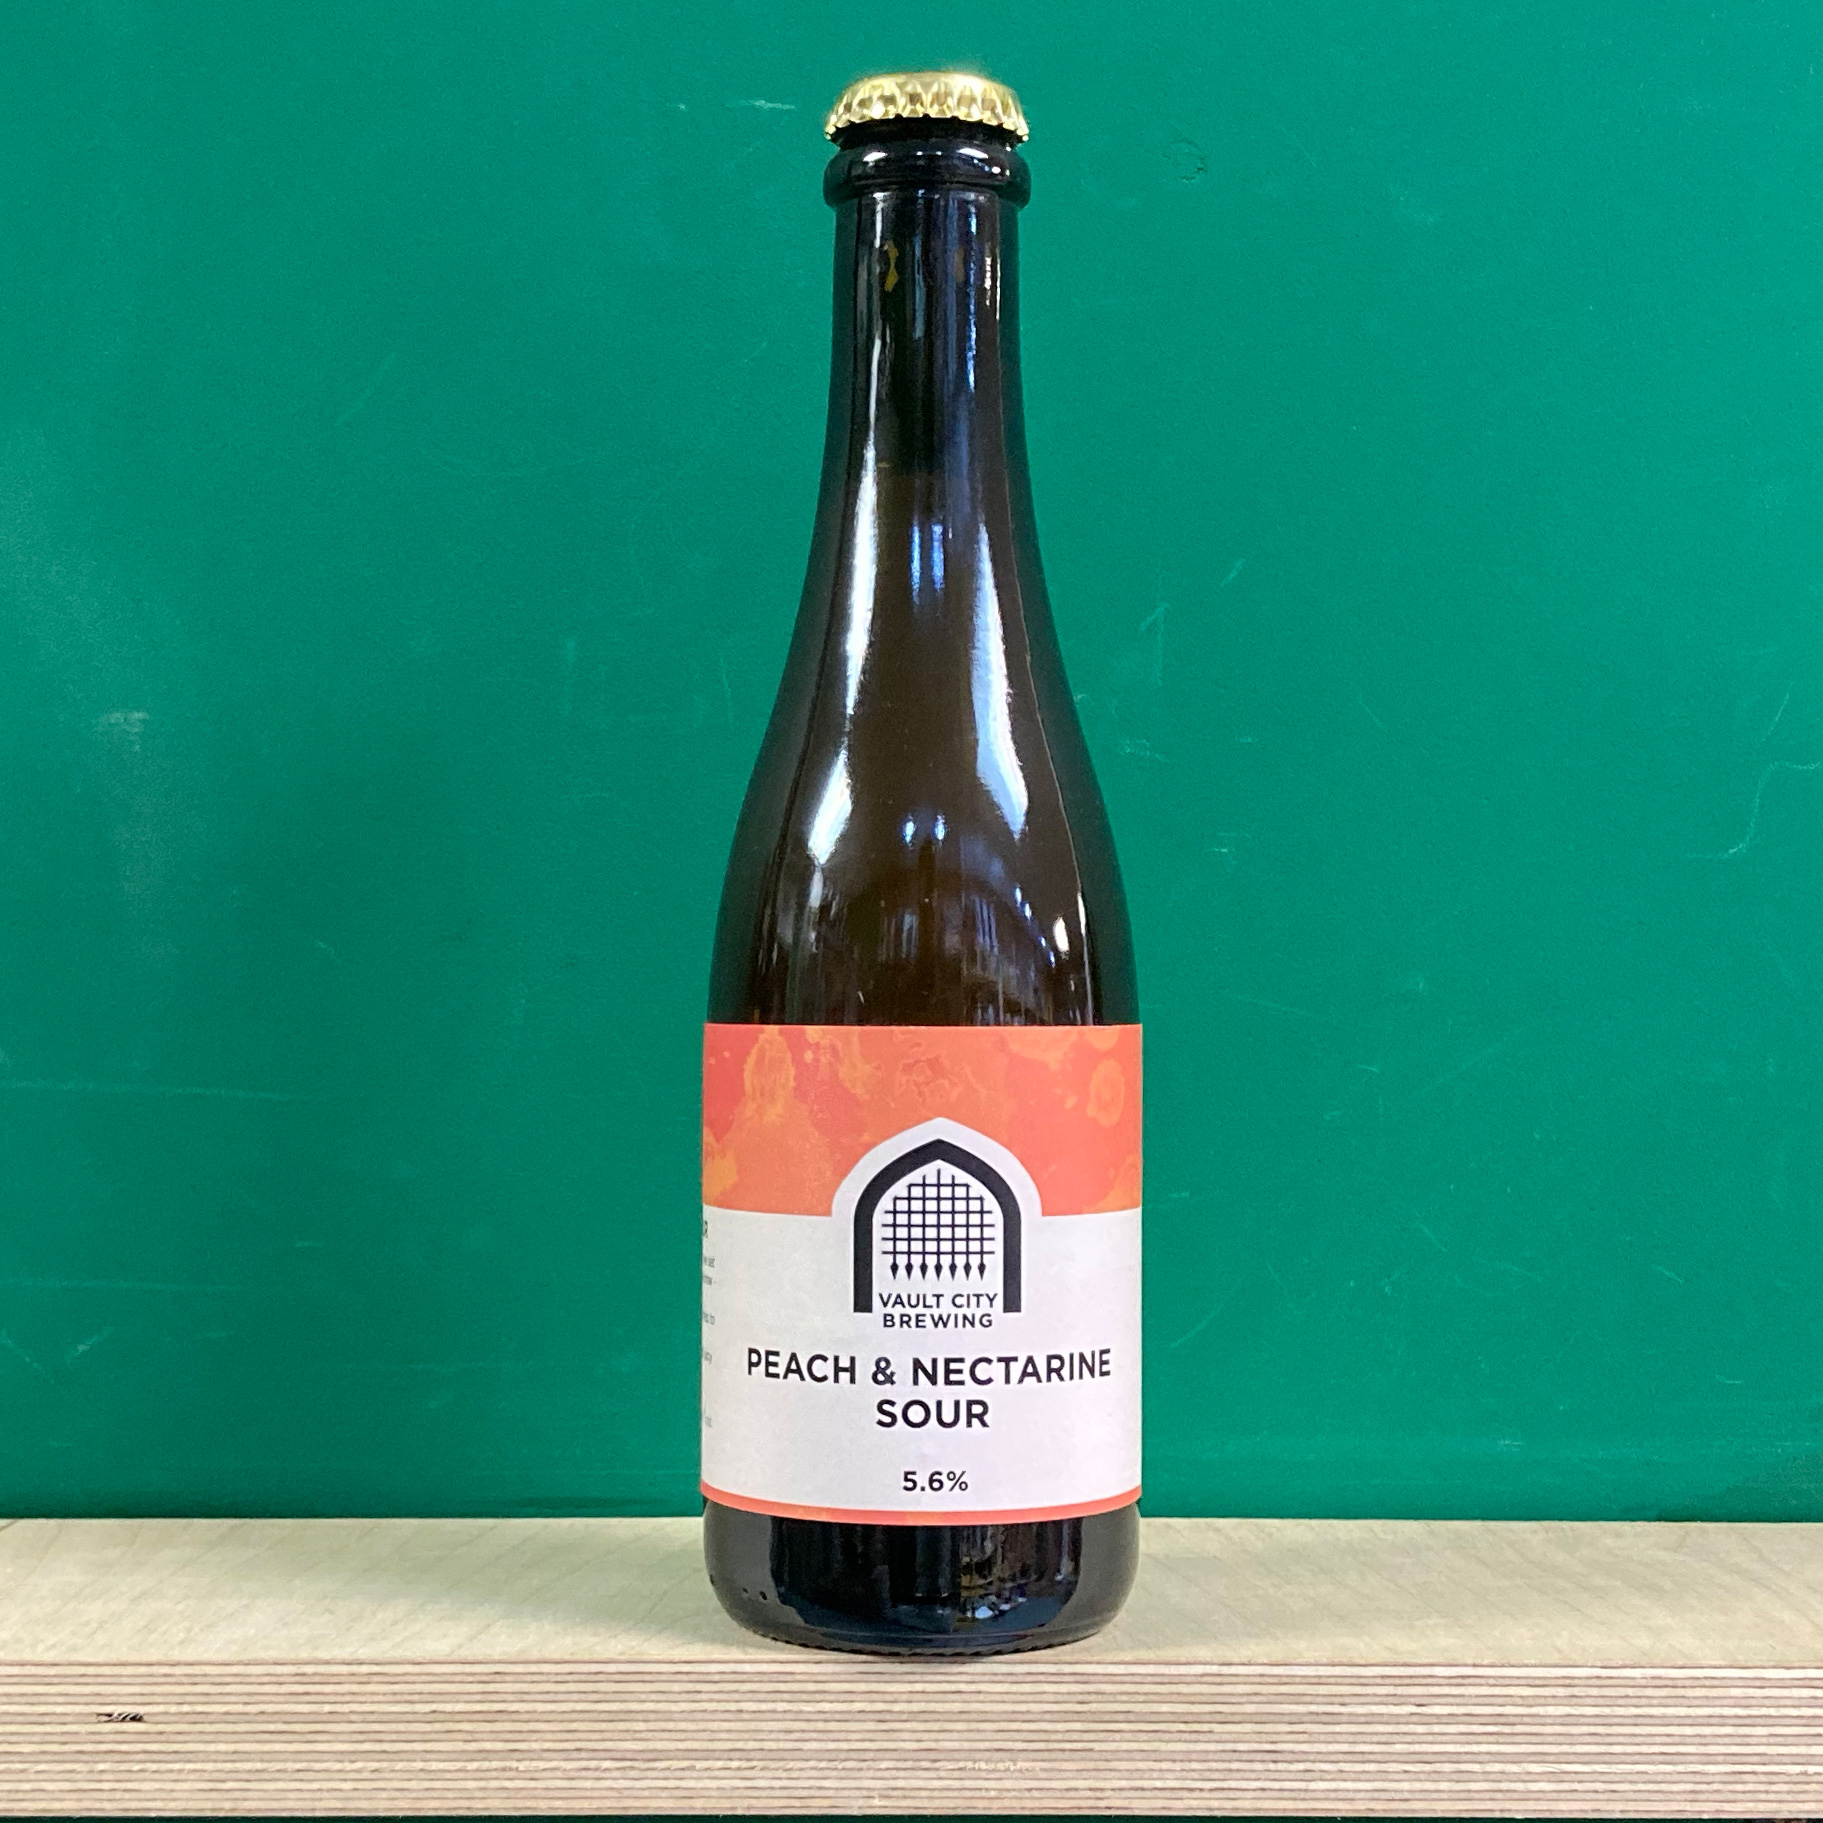 Vault City Brewing Peach & Nectarine Sour